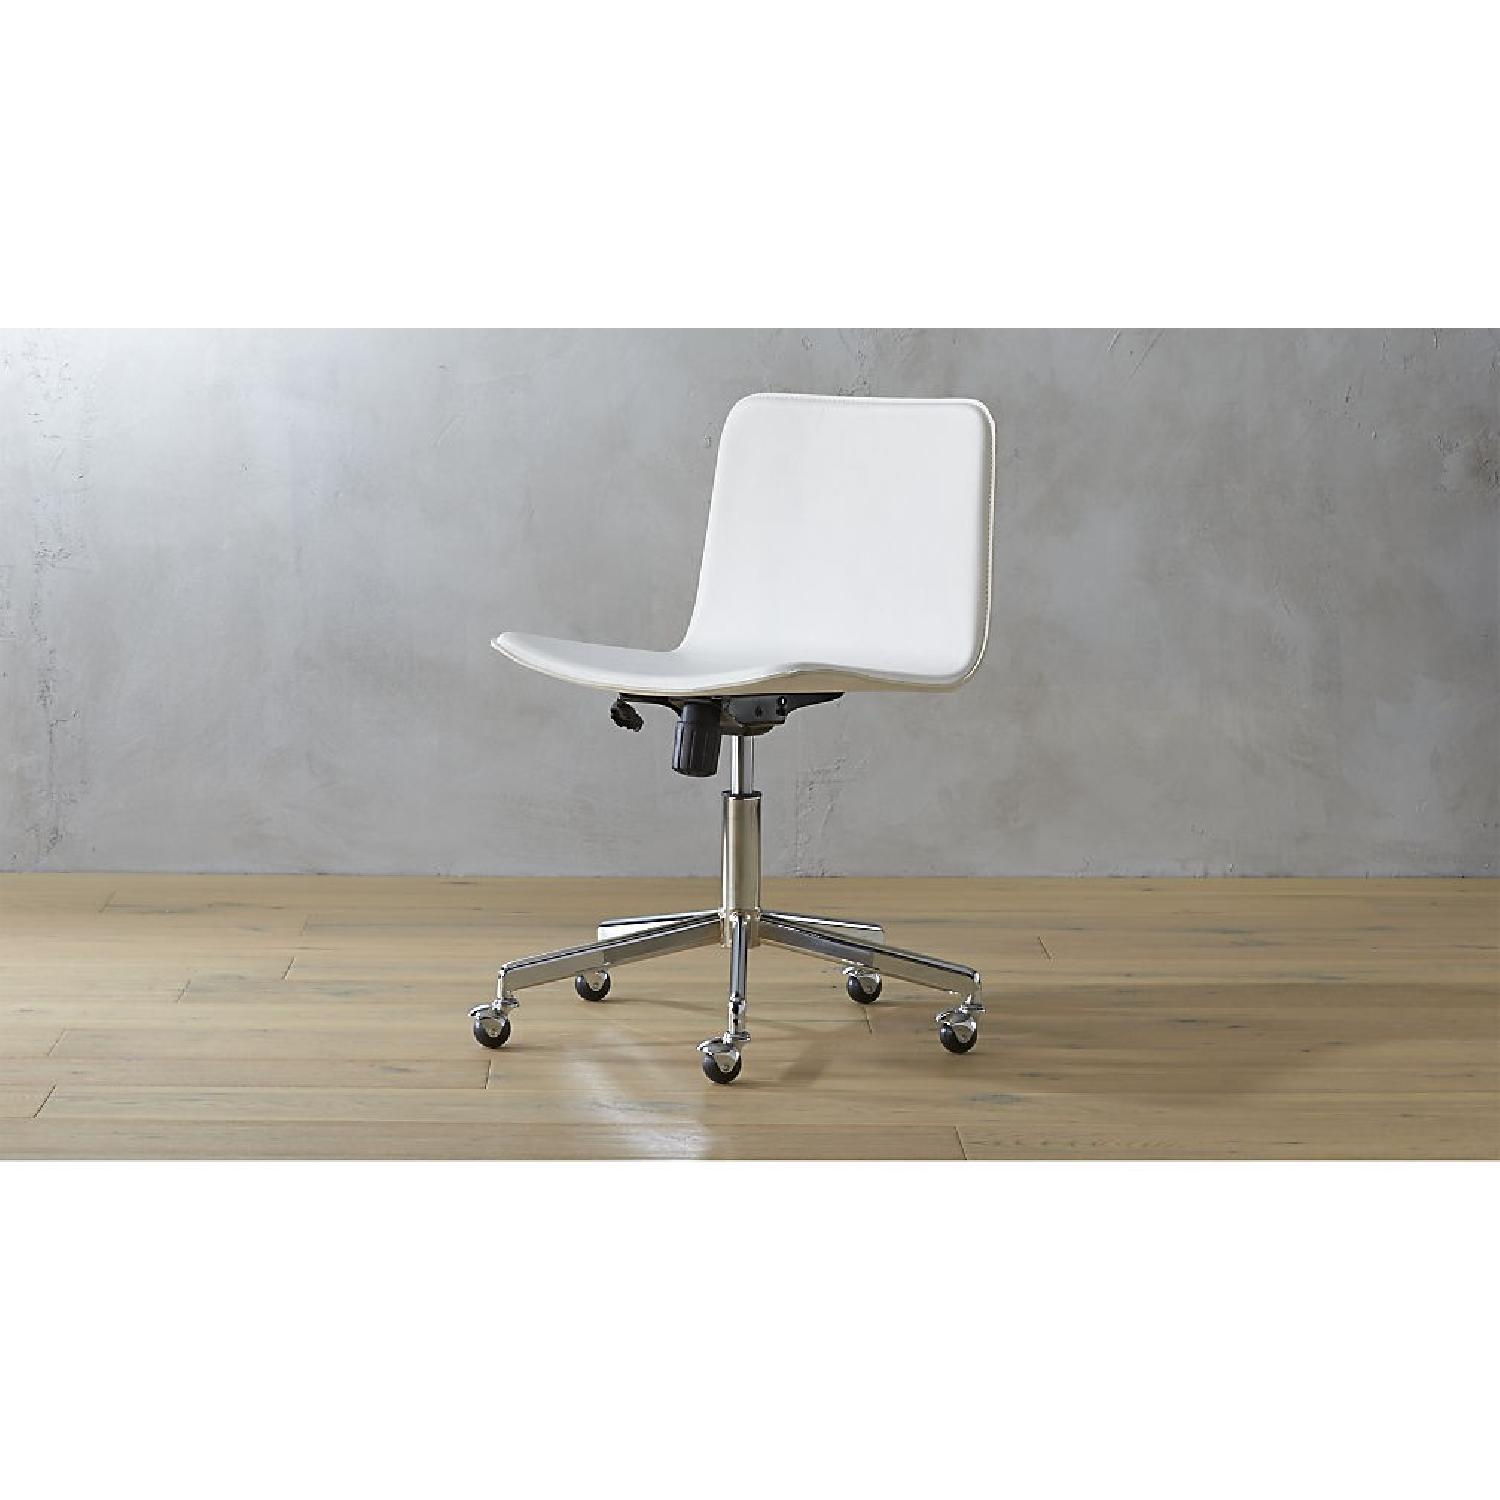 CB2 Form White Office Chair w/ Arm Rest - image-1